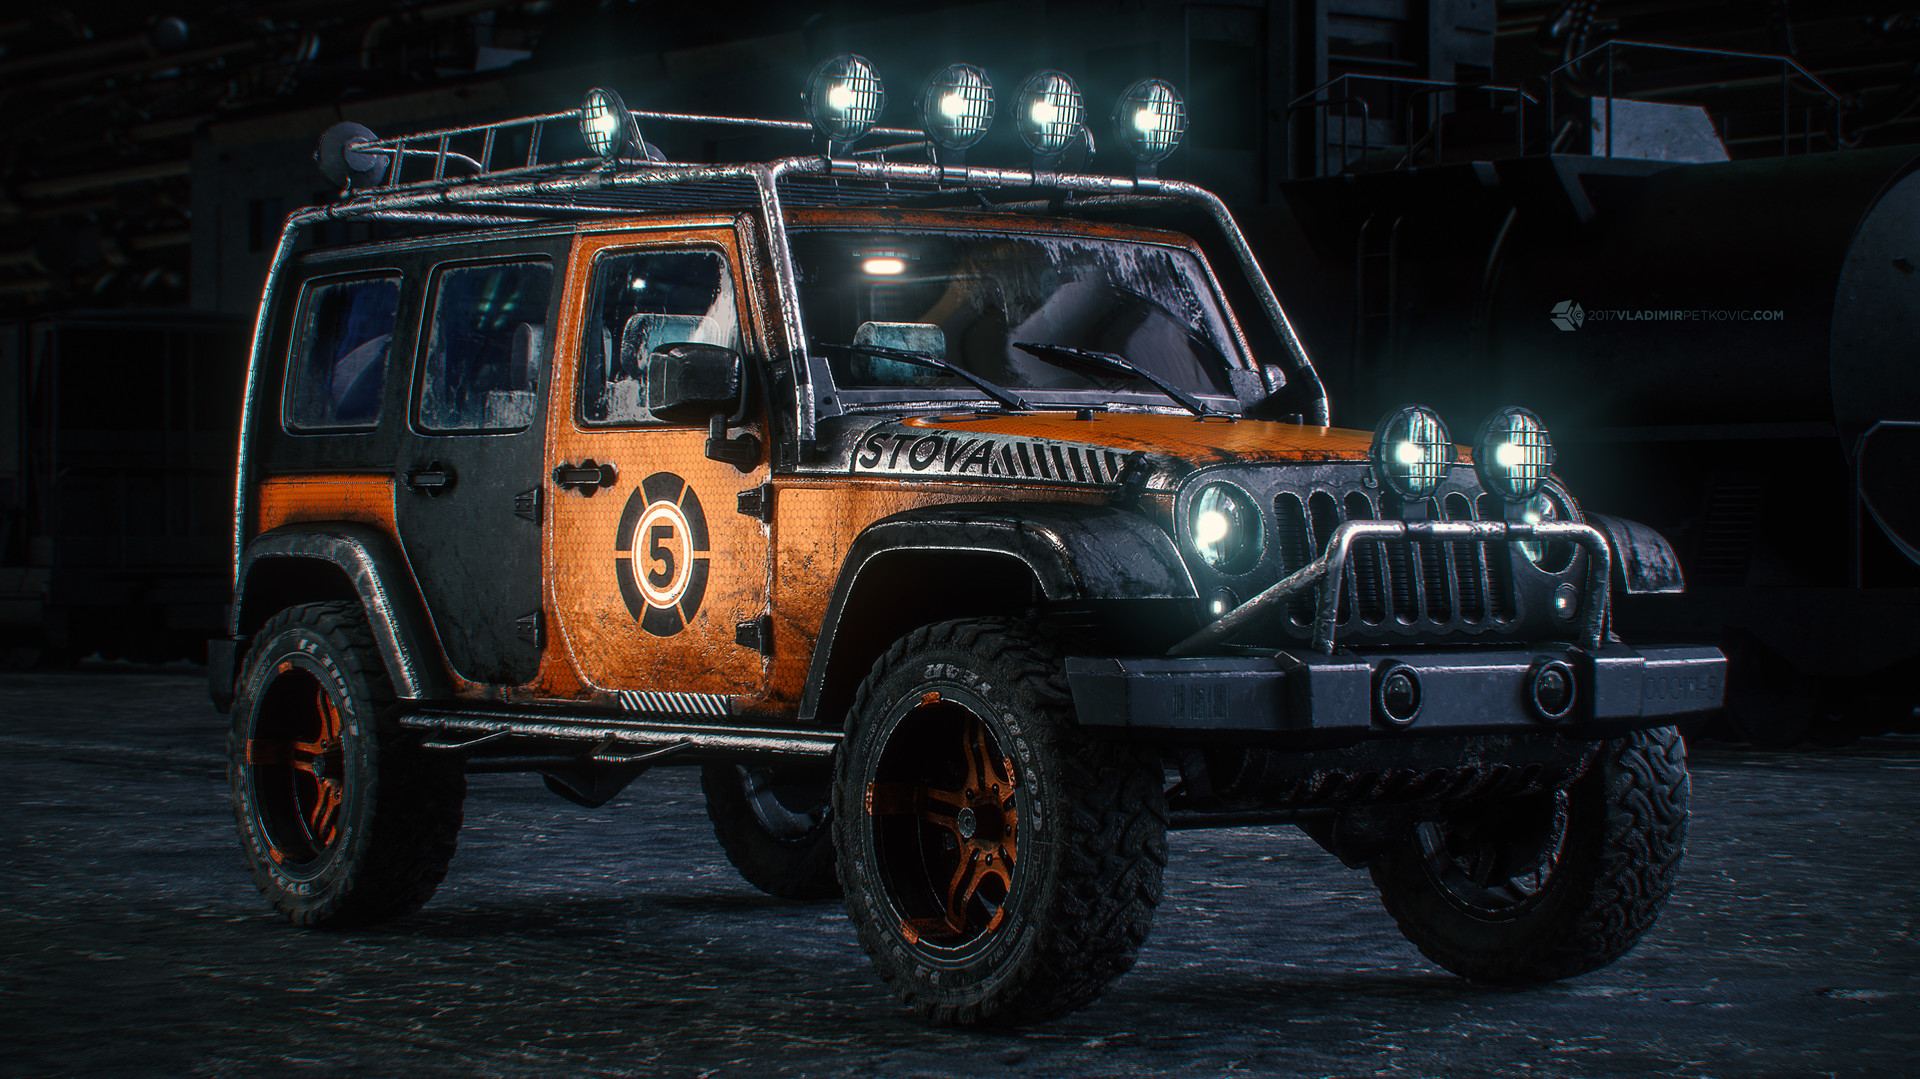 vladimir petkovic - jeep wrangler, custom paint job